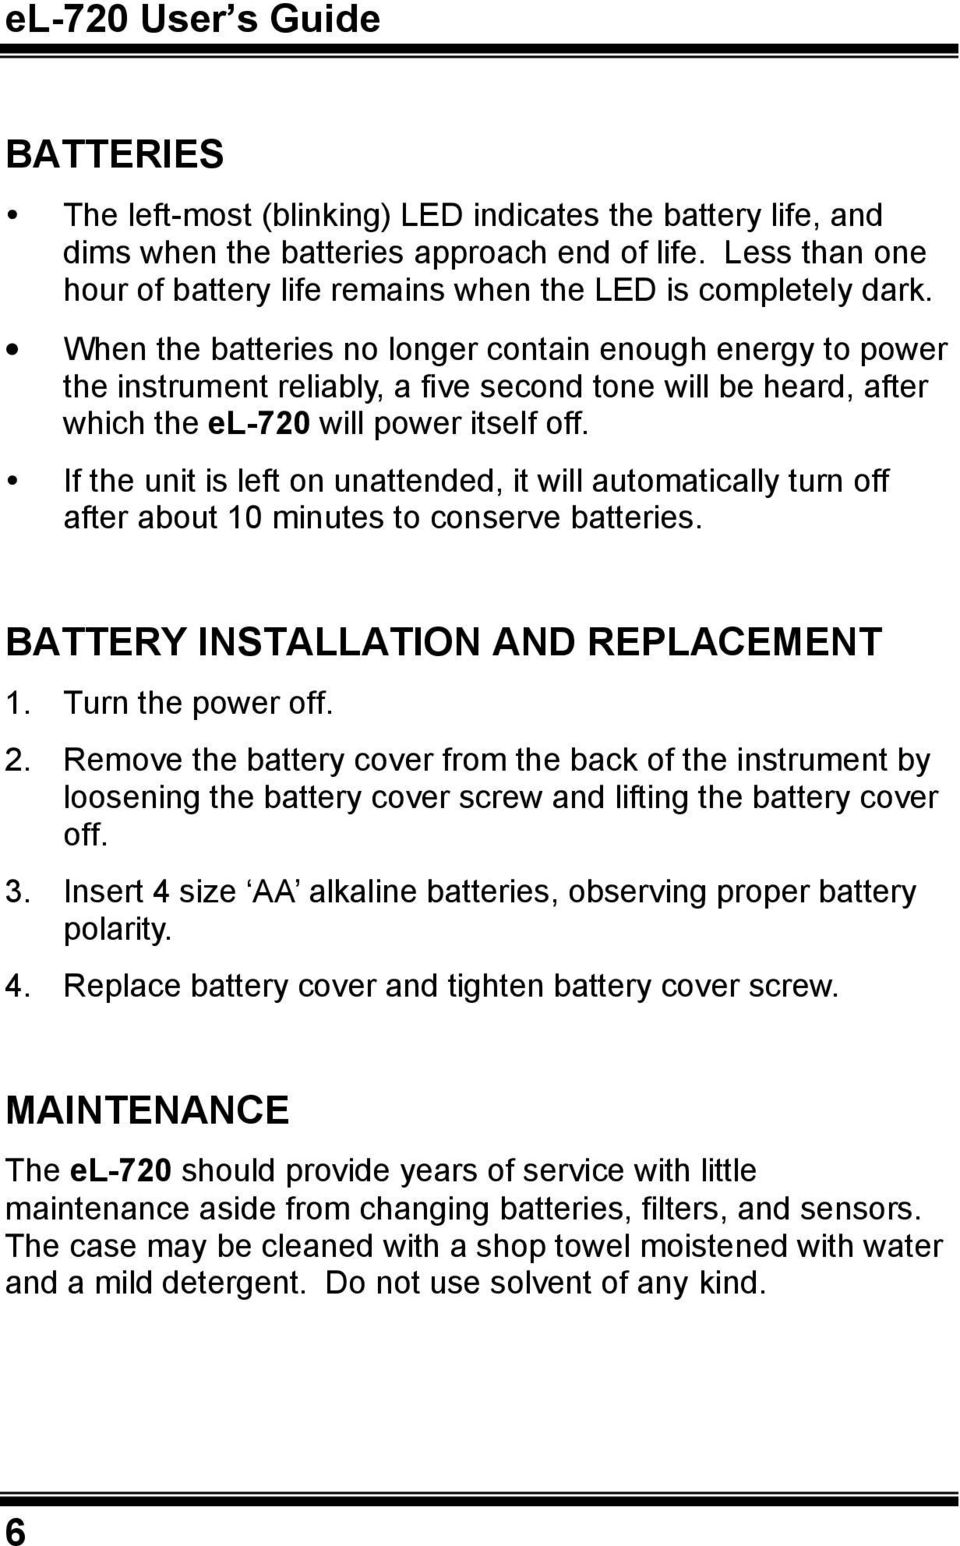 If the unit is left on unattended, it will automatically turn off after about 10 minutes to conserve batteries. BATTERY INSTALLATION AND REPLACEMENT 1. Turn the power off. 2.